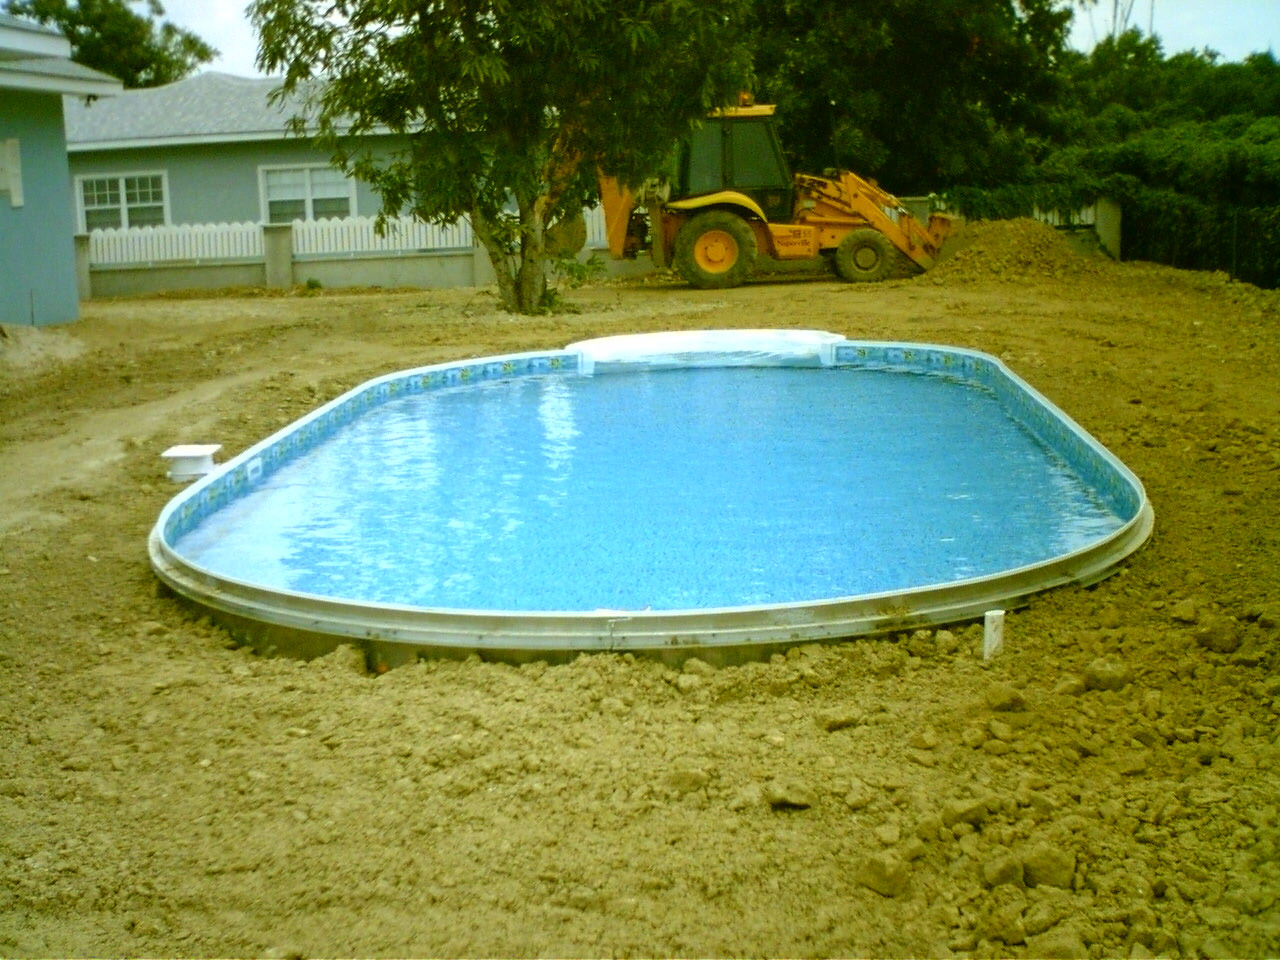 Best ideas about DIY In Ground Pool Kits . Save or Pin Easy Diy Inground Pool Now.